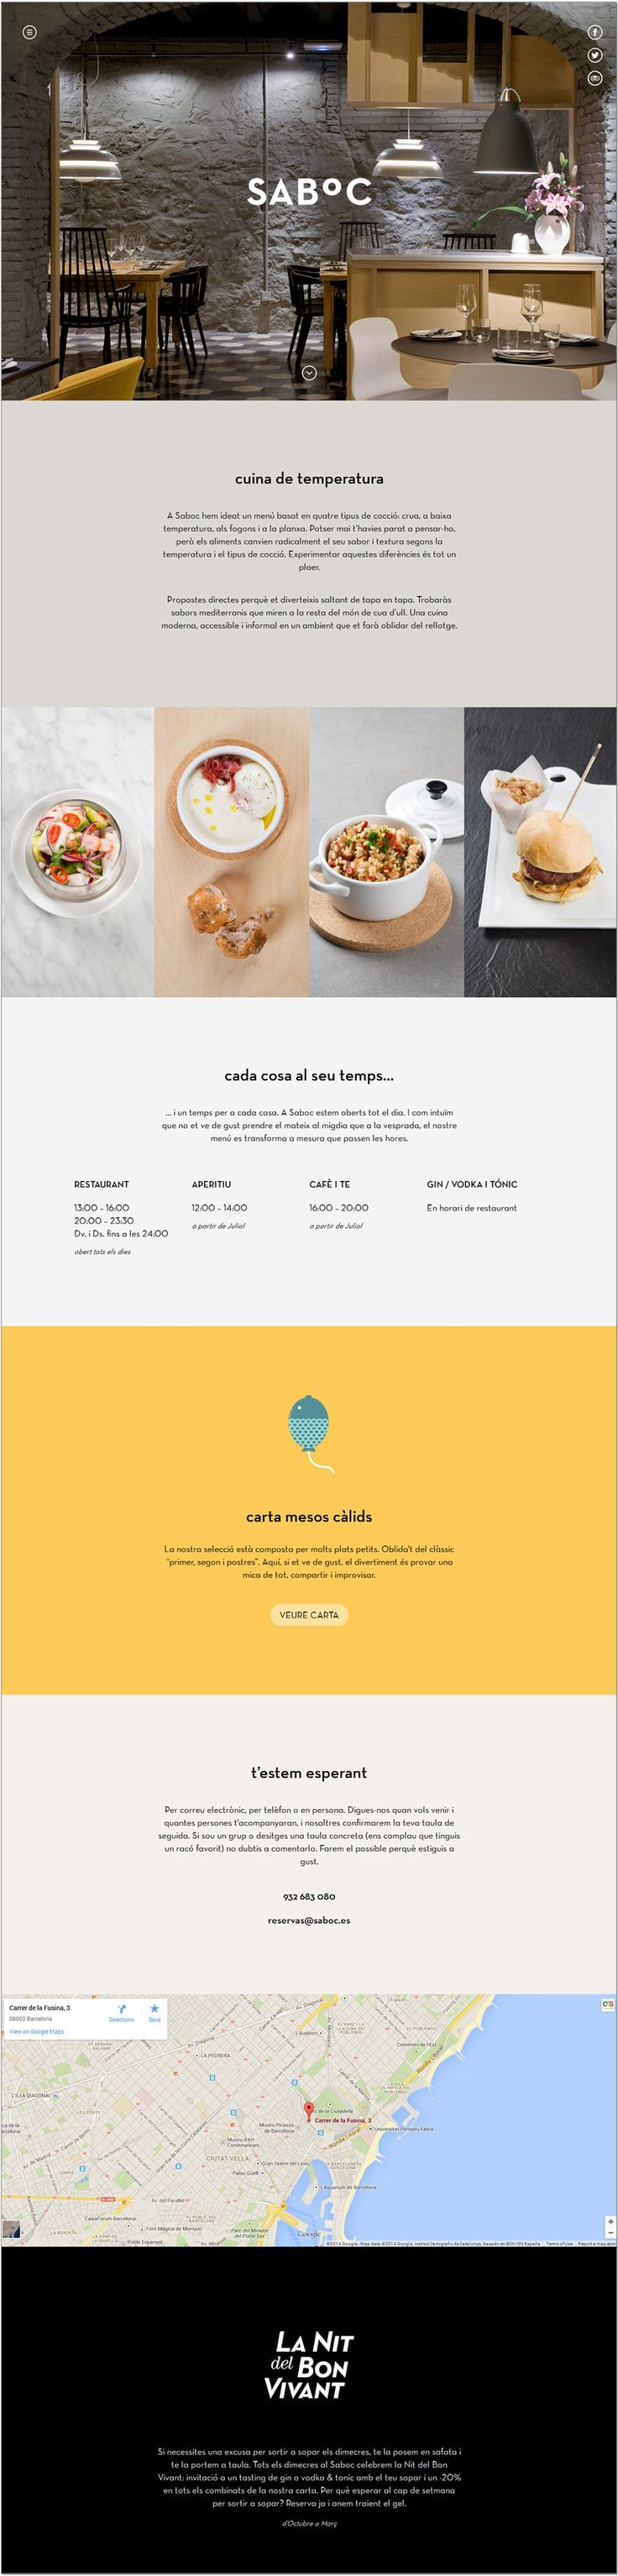 This website design is very simple and elegant. I really like how they formatted the text and I also think that the way they fit four photos of the product side-by-side works very well.